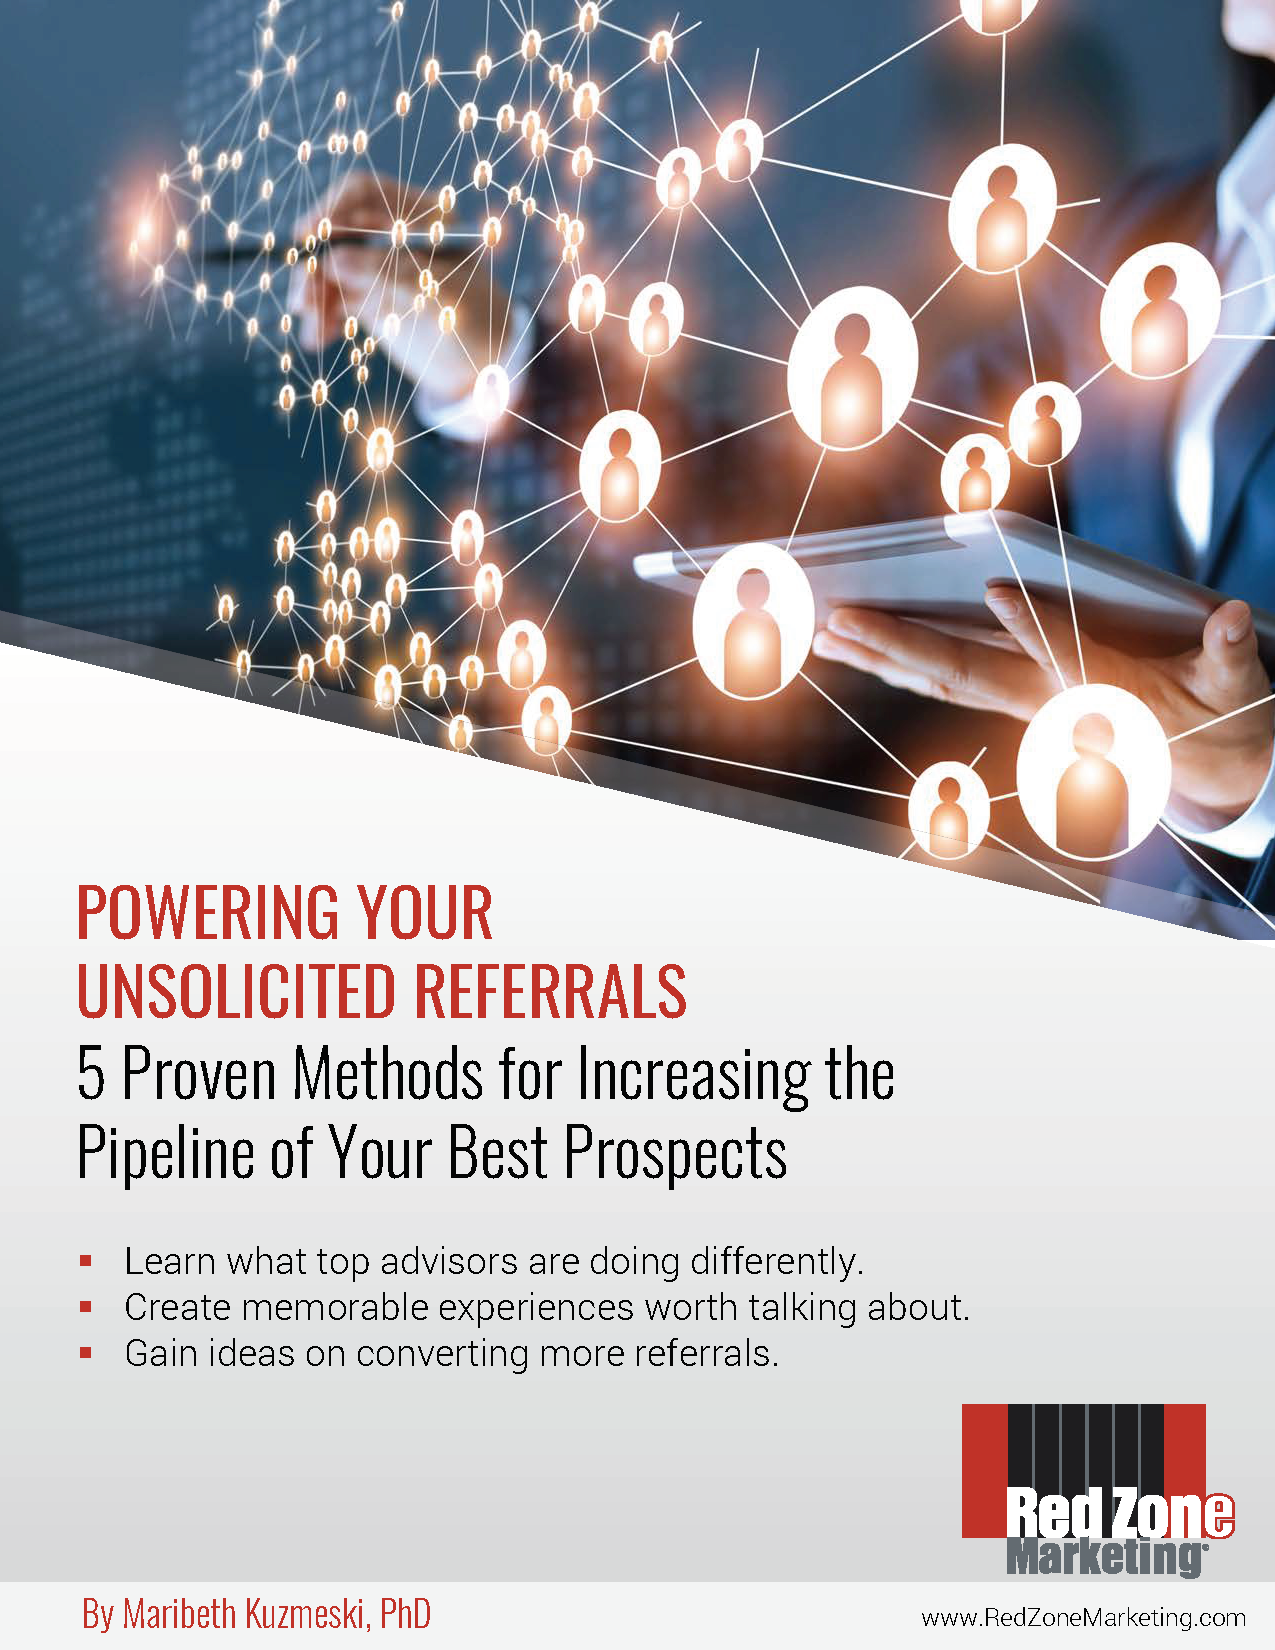 Guide to Powering Referrals Without Asking